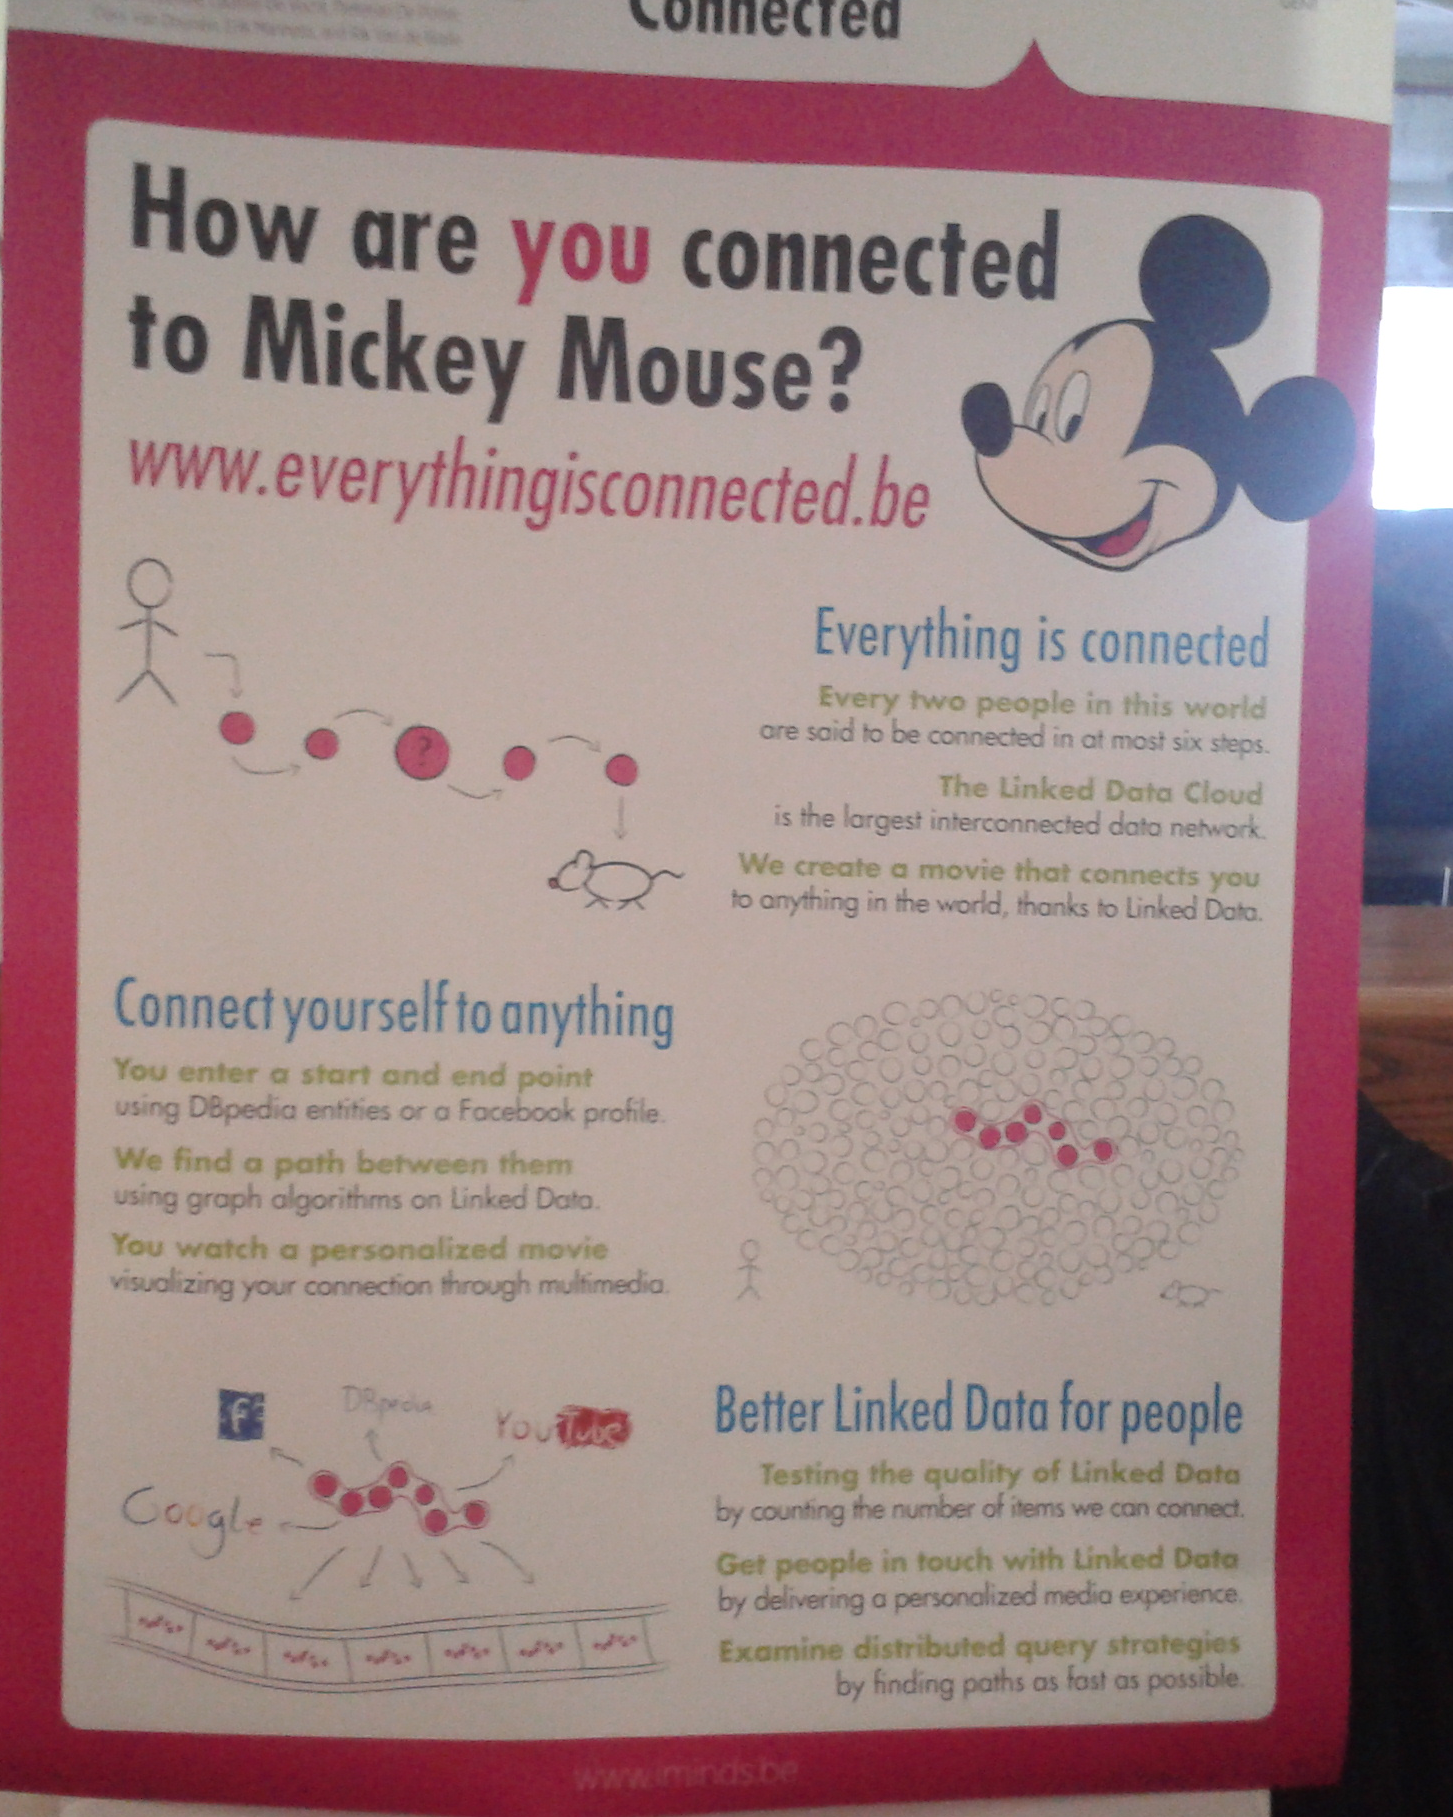 www.everythingsconnected.be